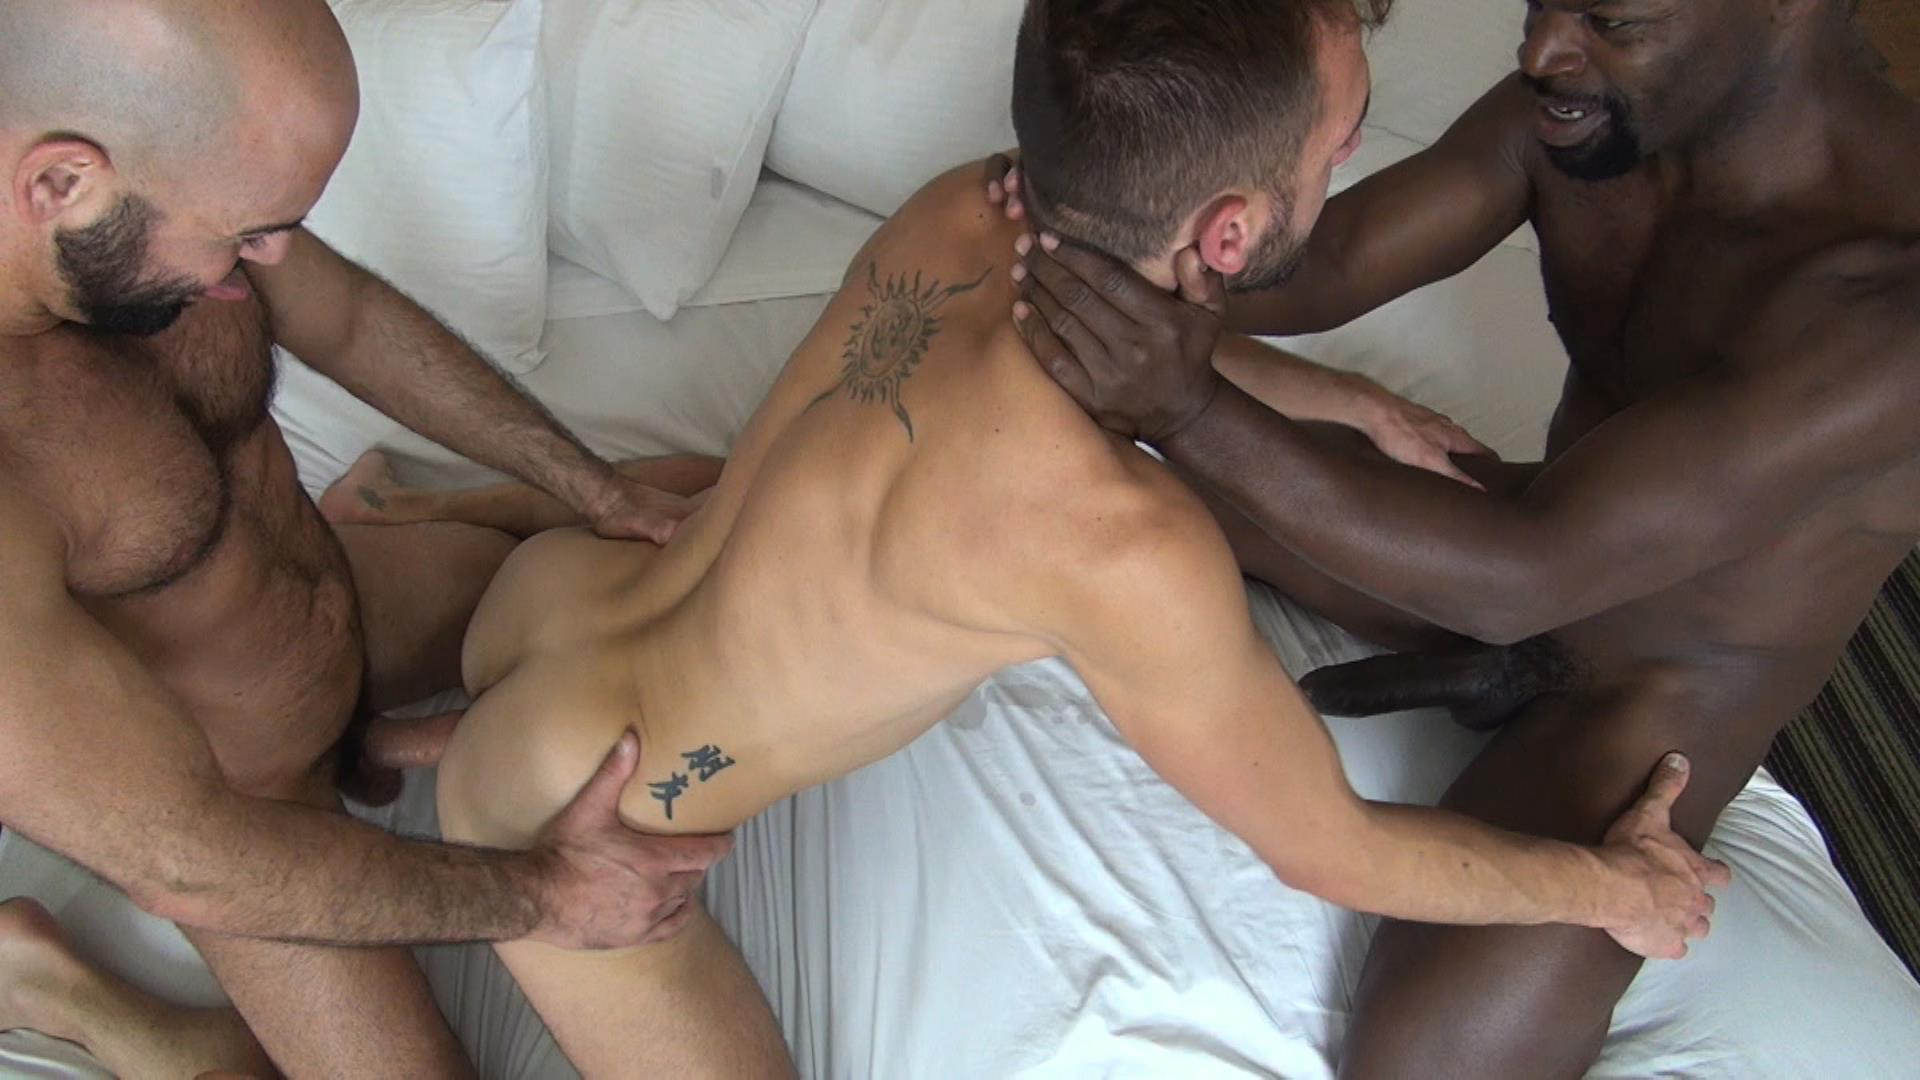 Best of Gay Porn Raw Sex